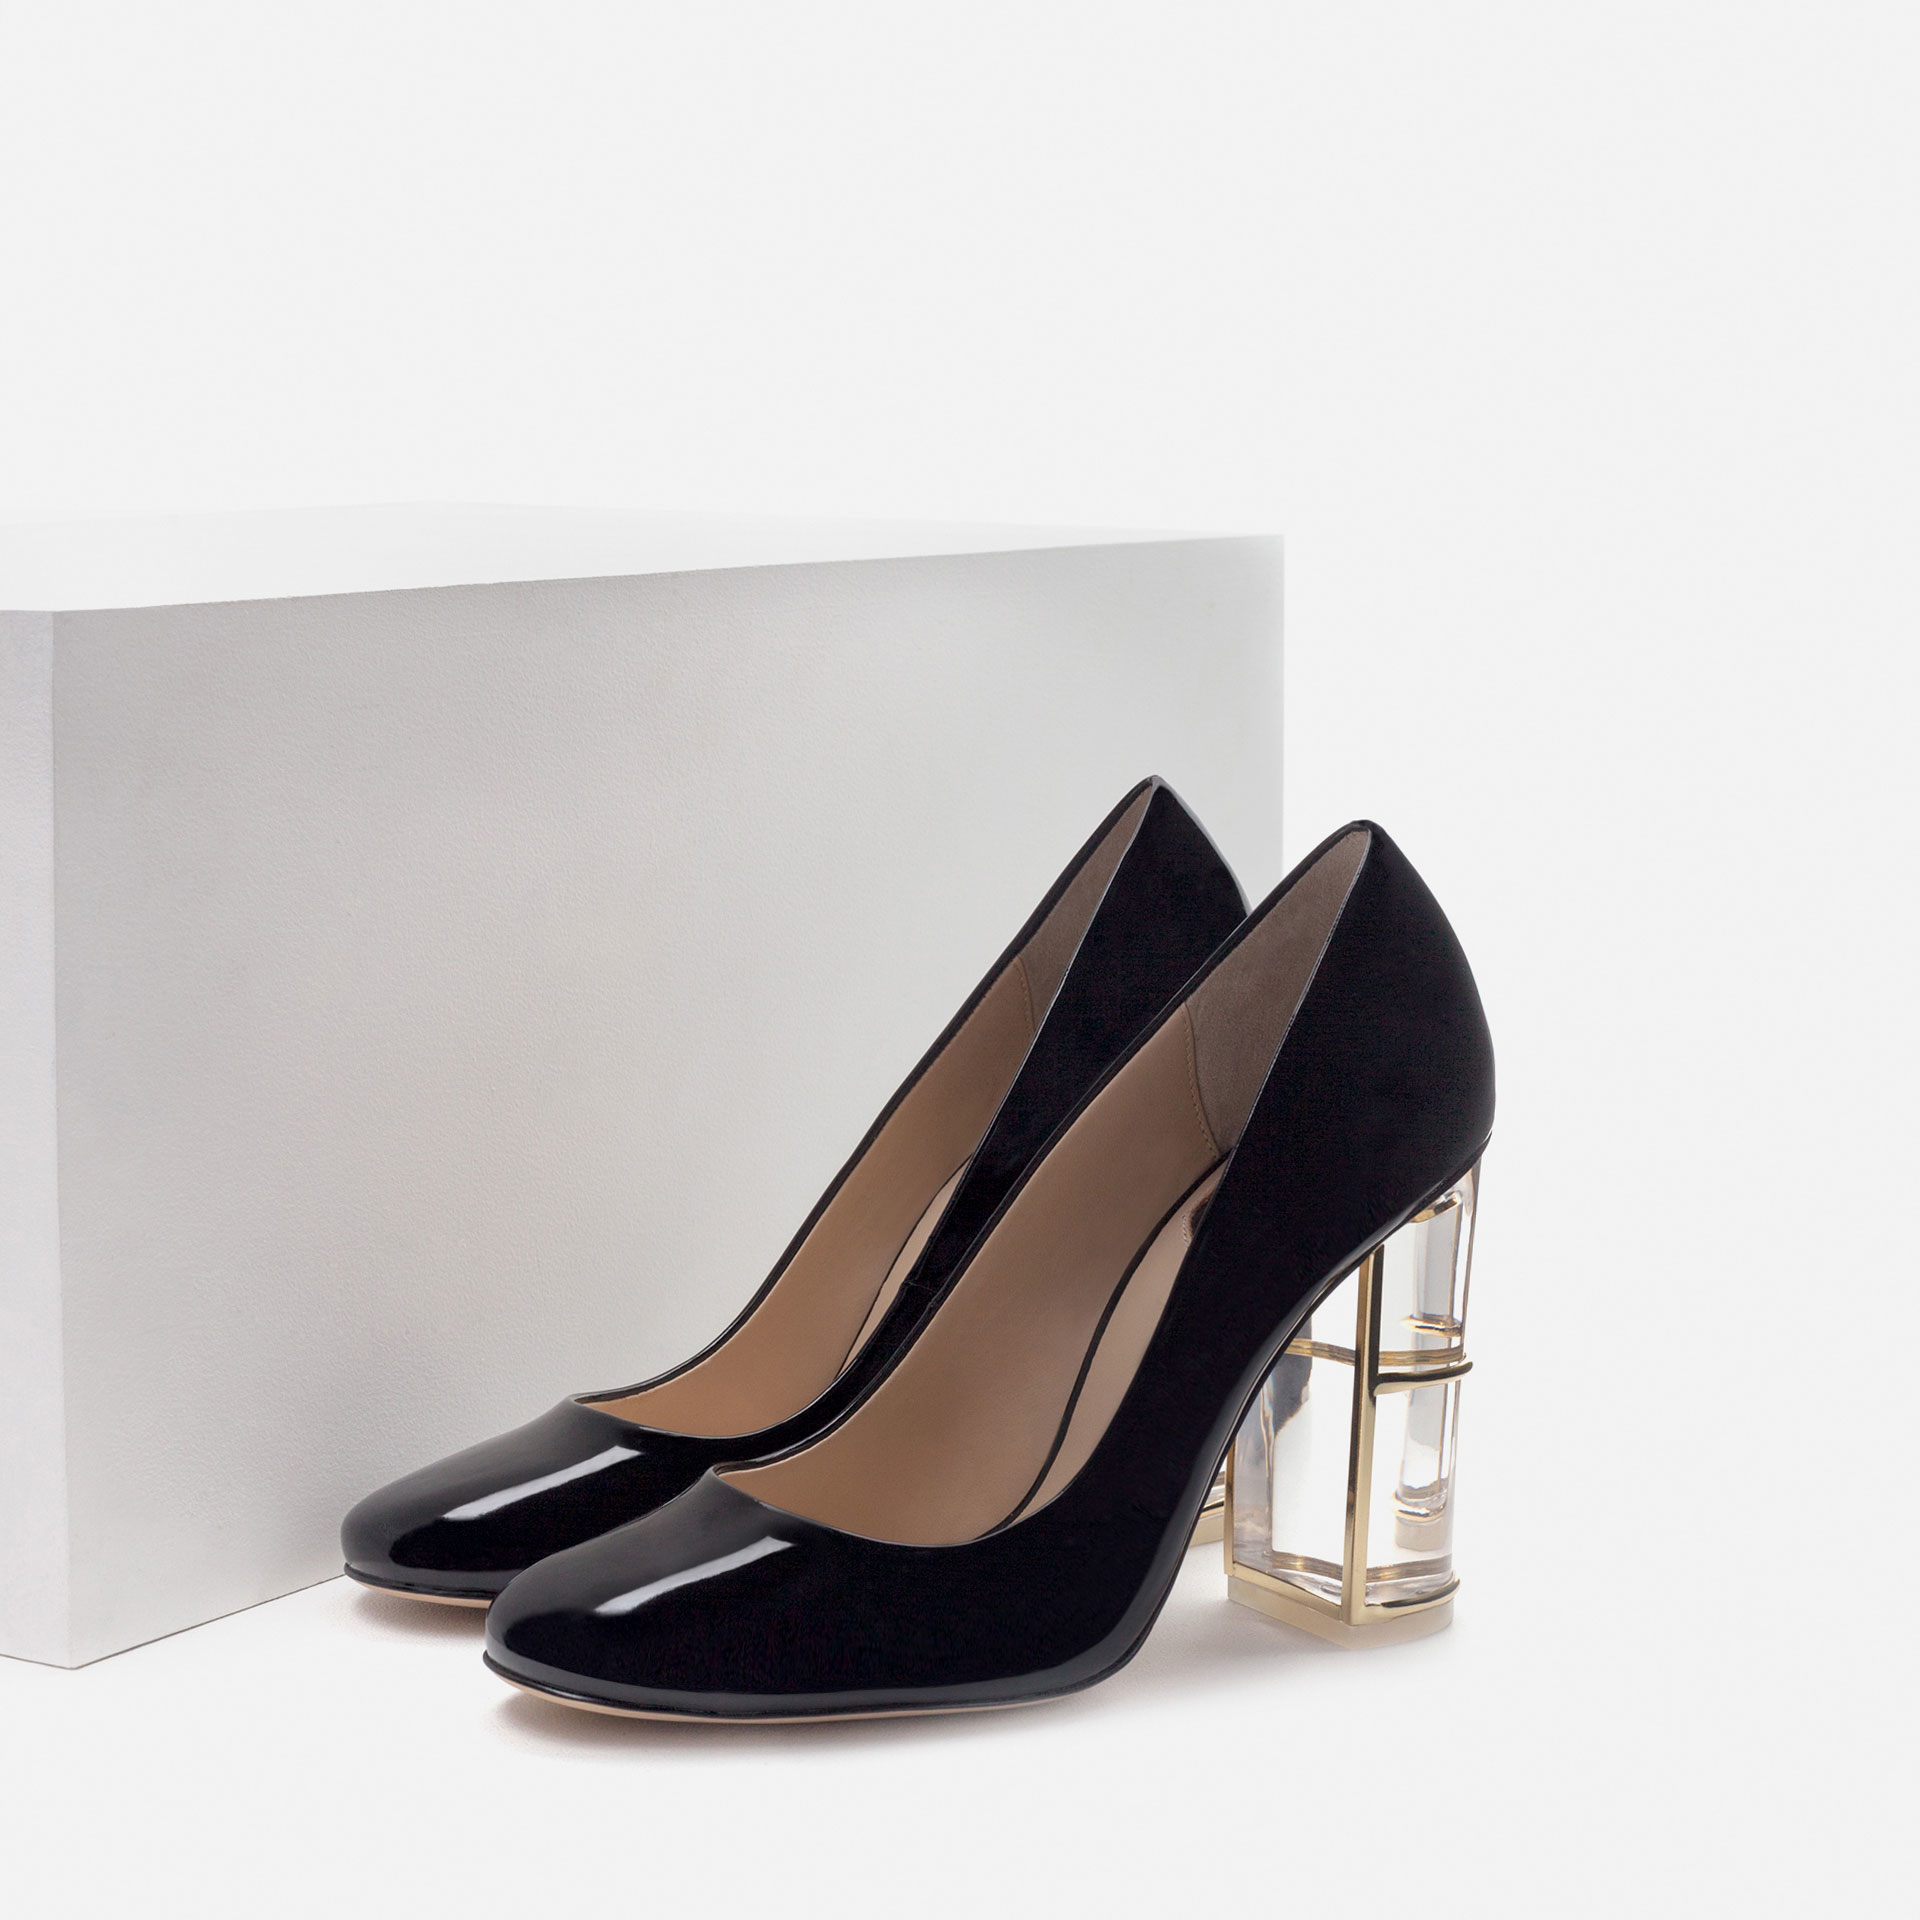 Unique Zara Glossy Flat Shoes In Black  Lyst